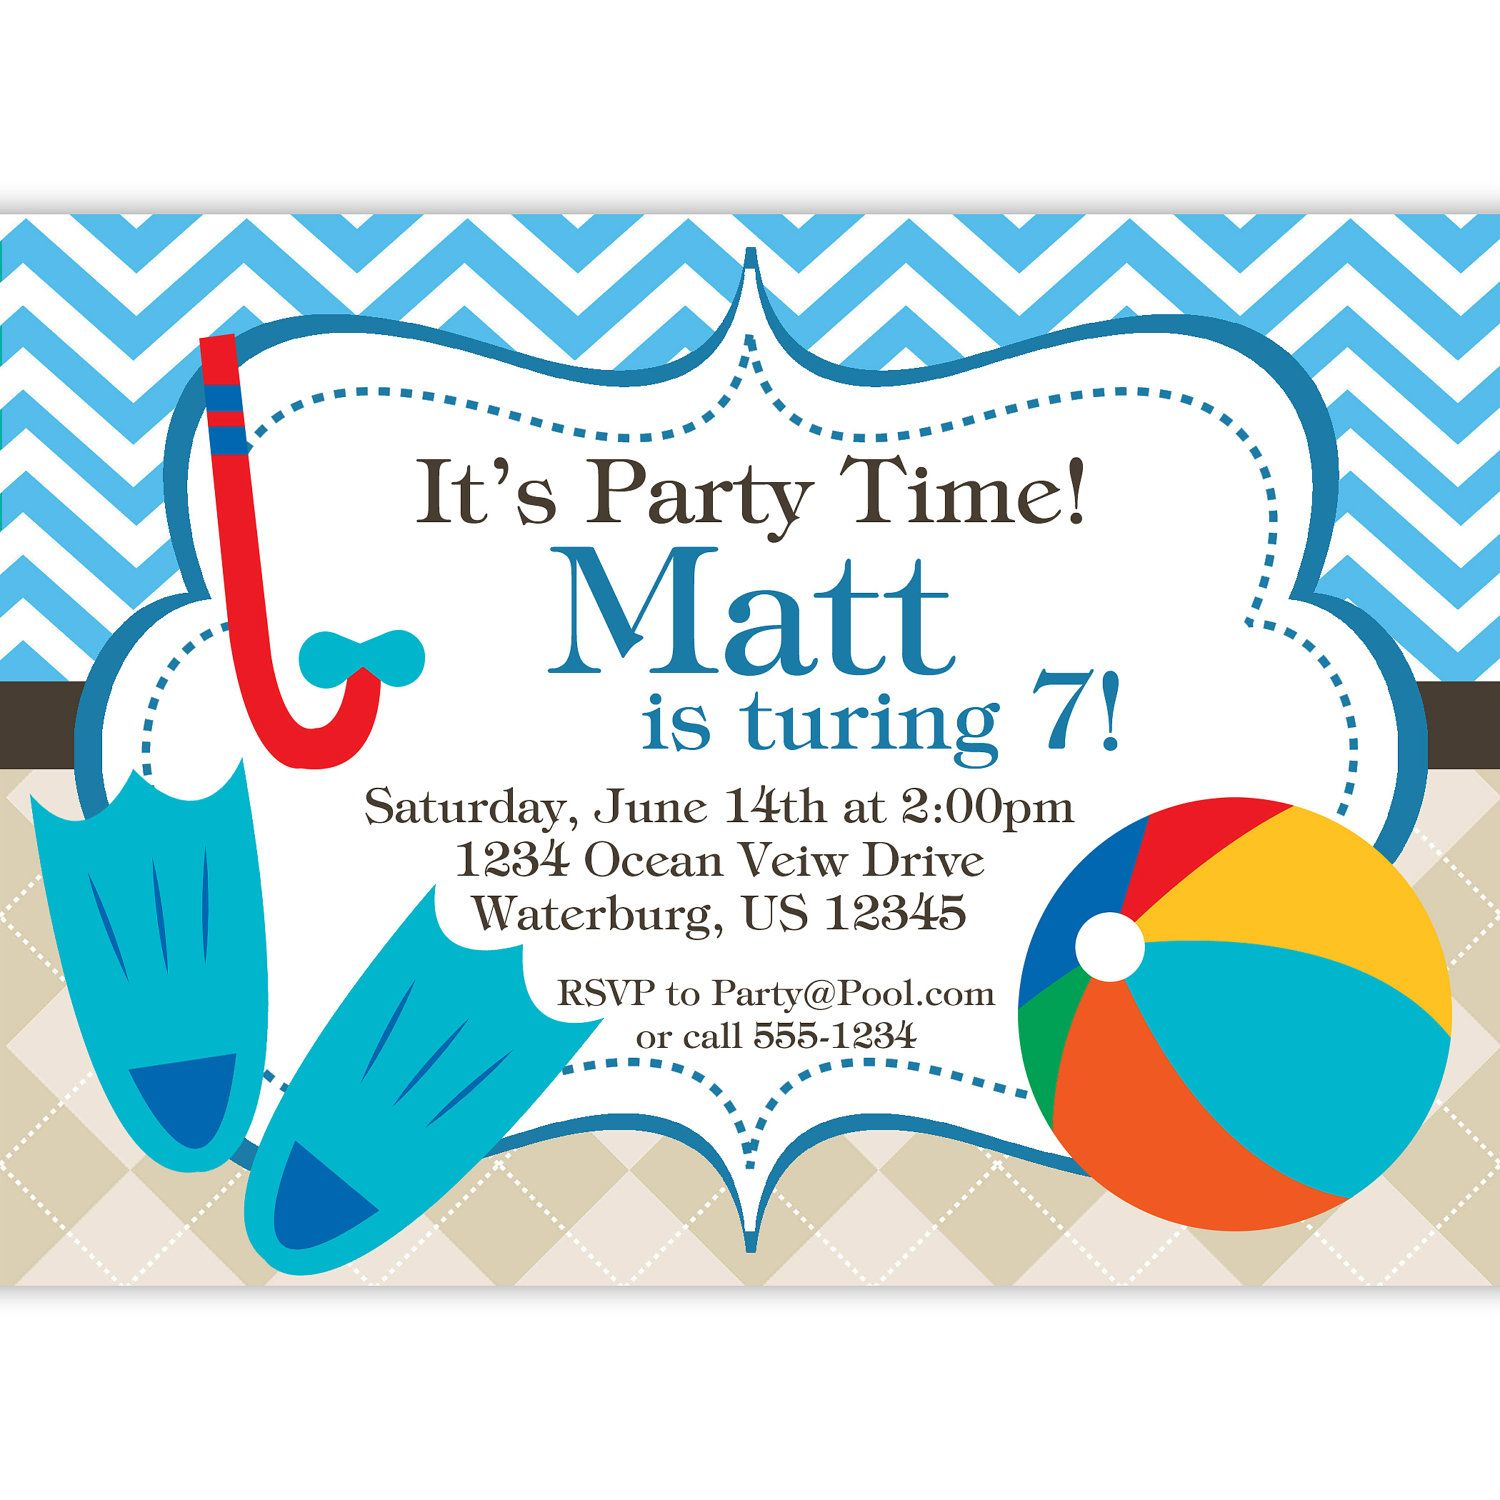 Pool Party Invitation Blue Chevron and Tan Argyle Beach Ball